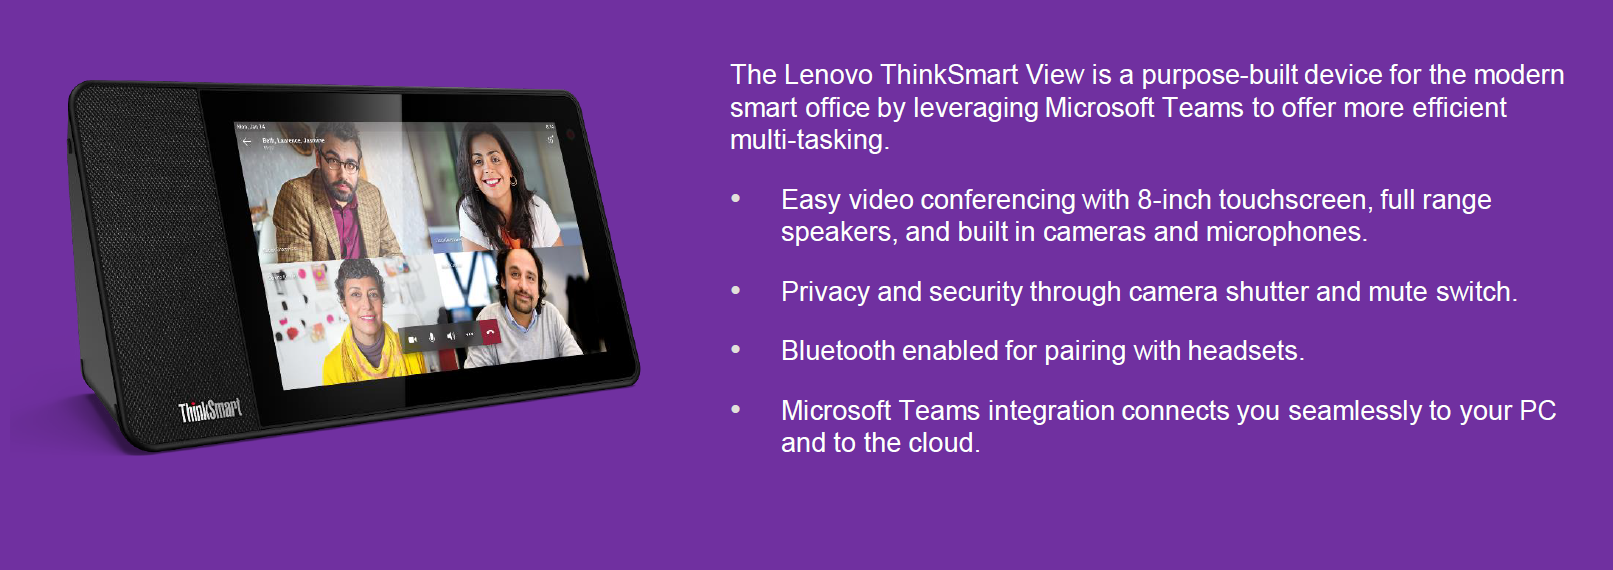 Ces 2020: lenovo rolls out new thinksmart device bundles and digital creator lineup - onmsft. Com - january 3, 2020